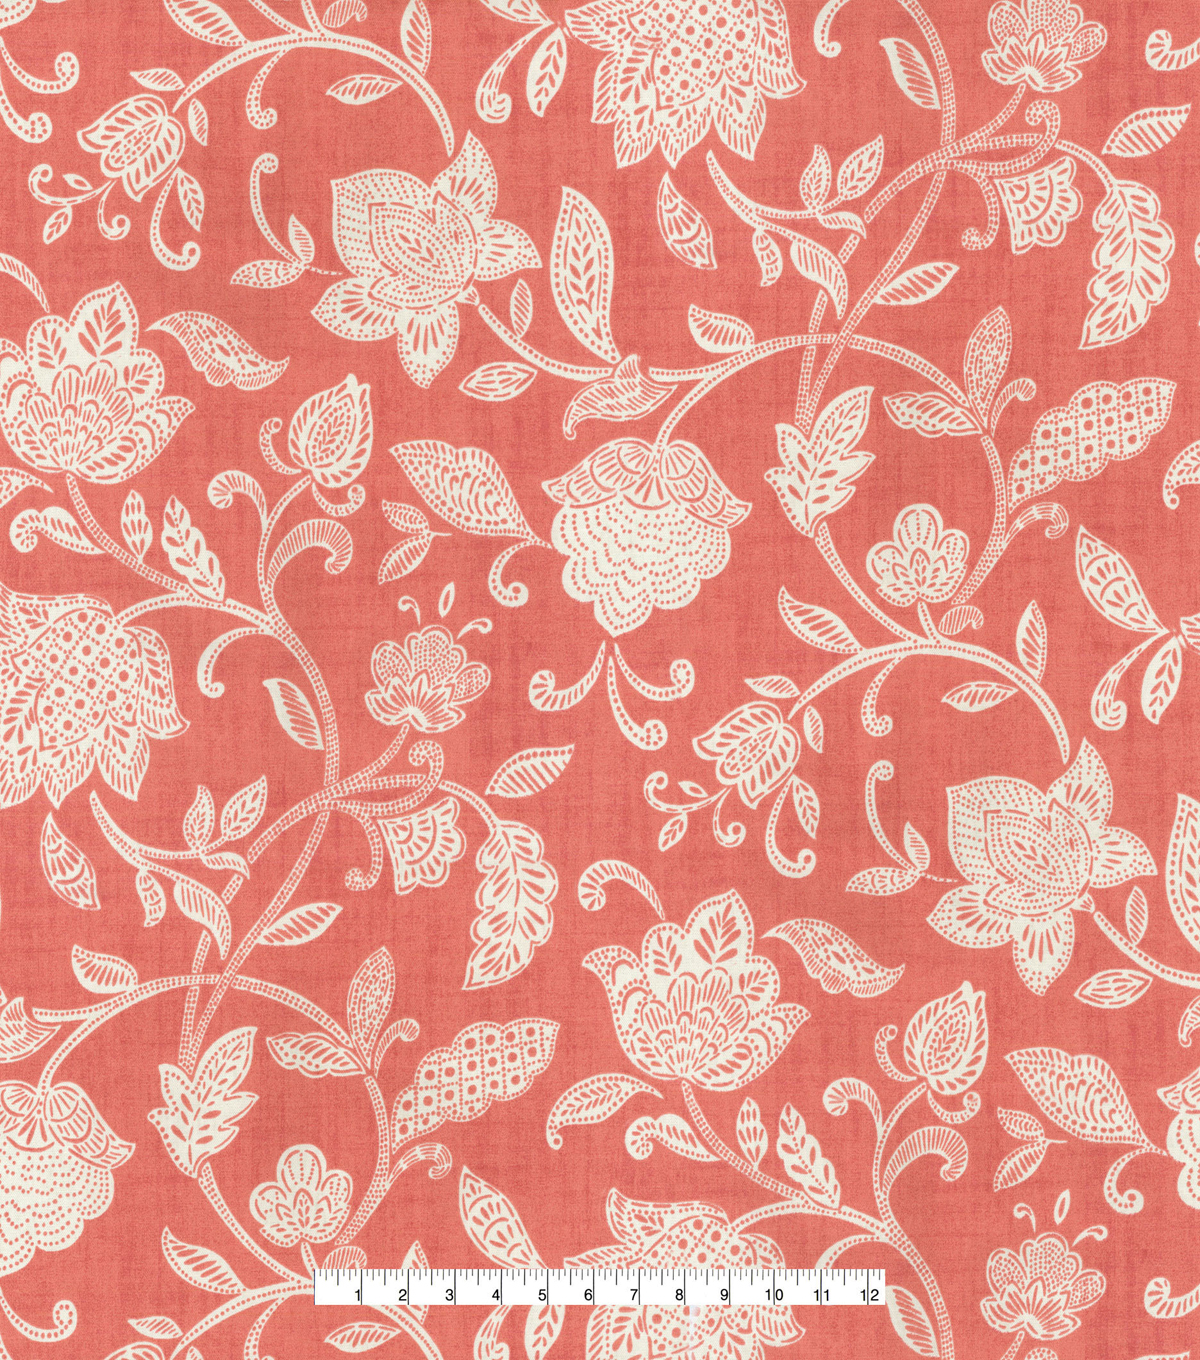 Waverly Upholstery Décor Fabric-Stencil Vine Coral